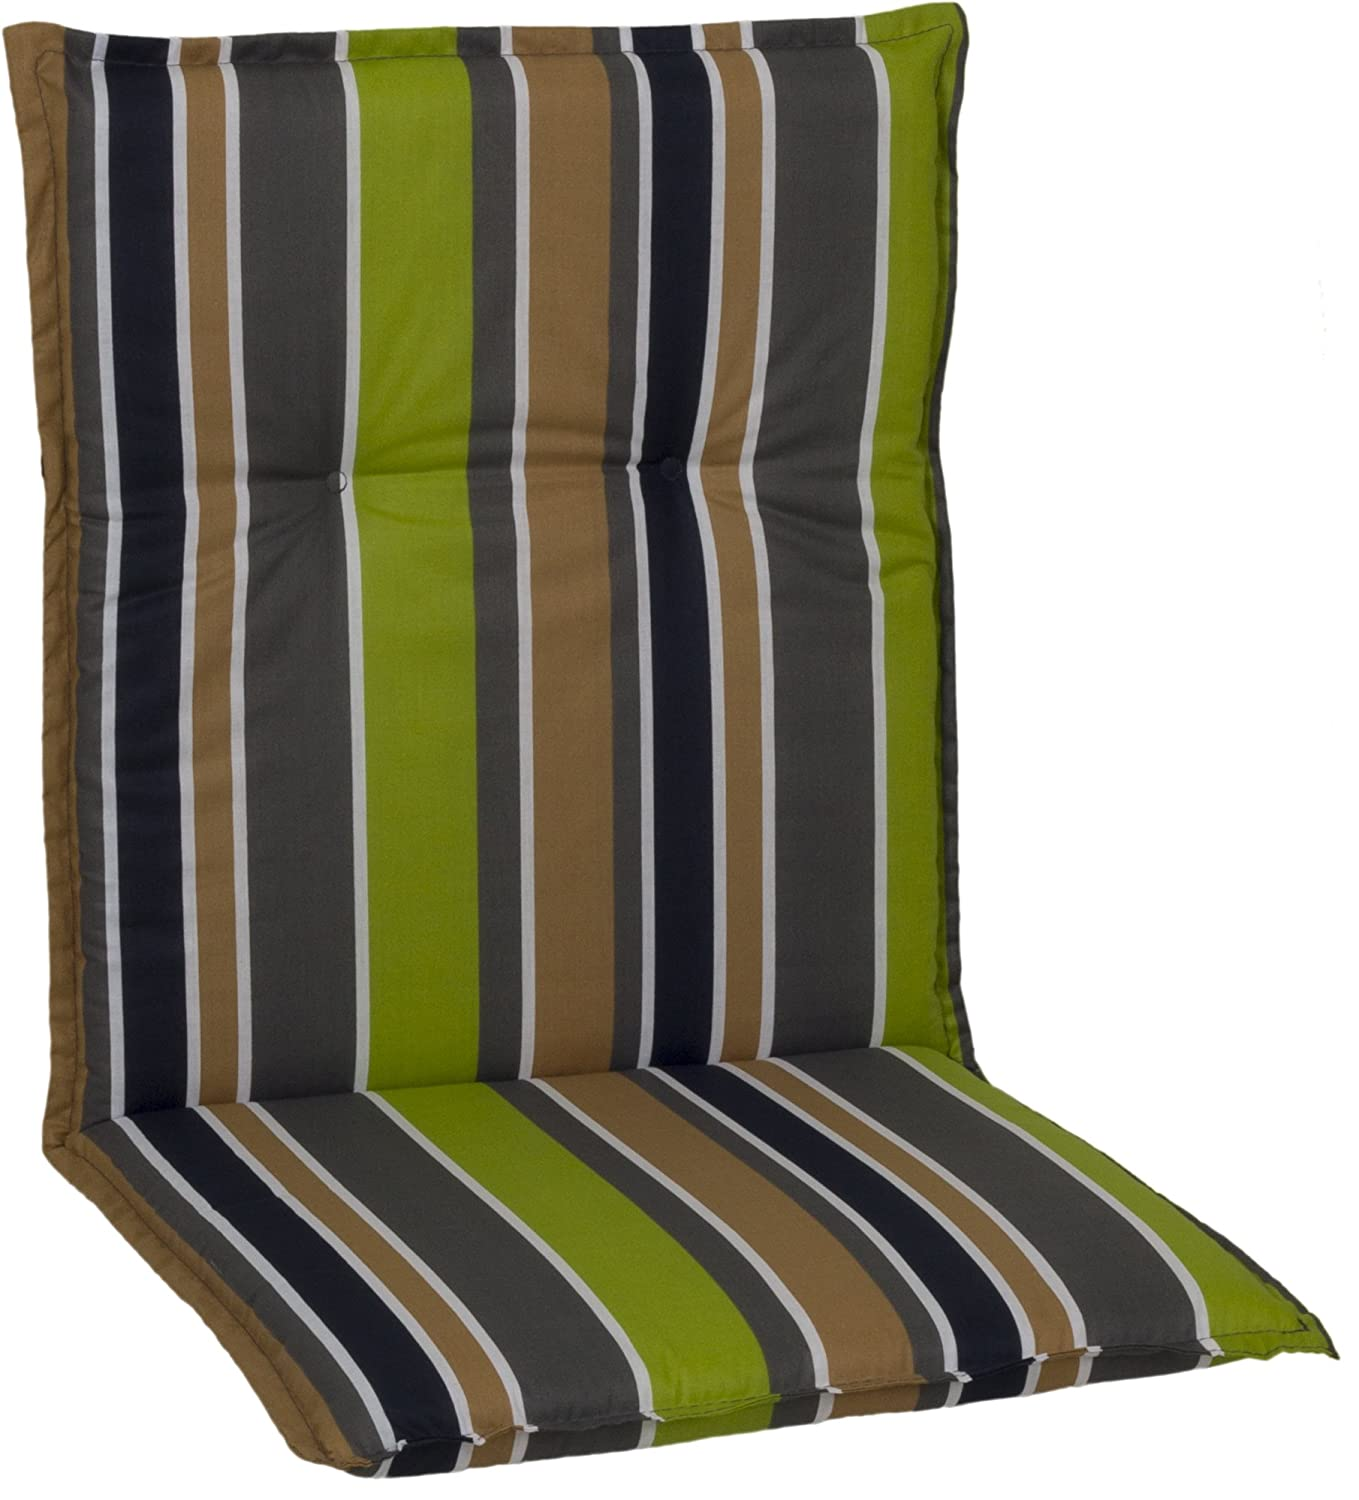 Garden chair cushion seating pad for low back chairs striped in dark gray, brown, beige, green and white Gartenstuhl-Kissen